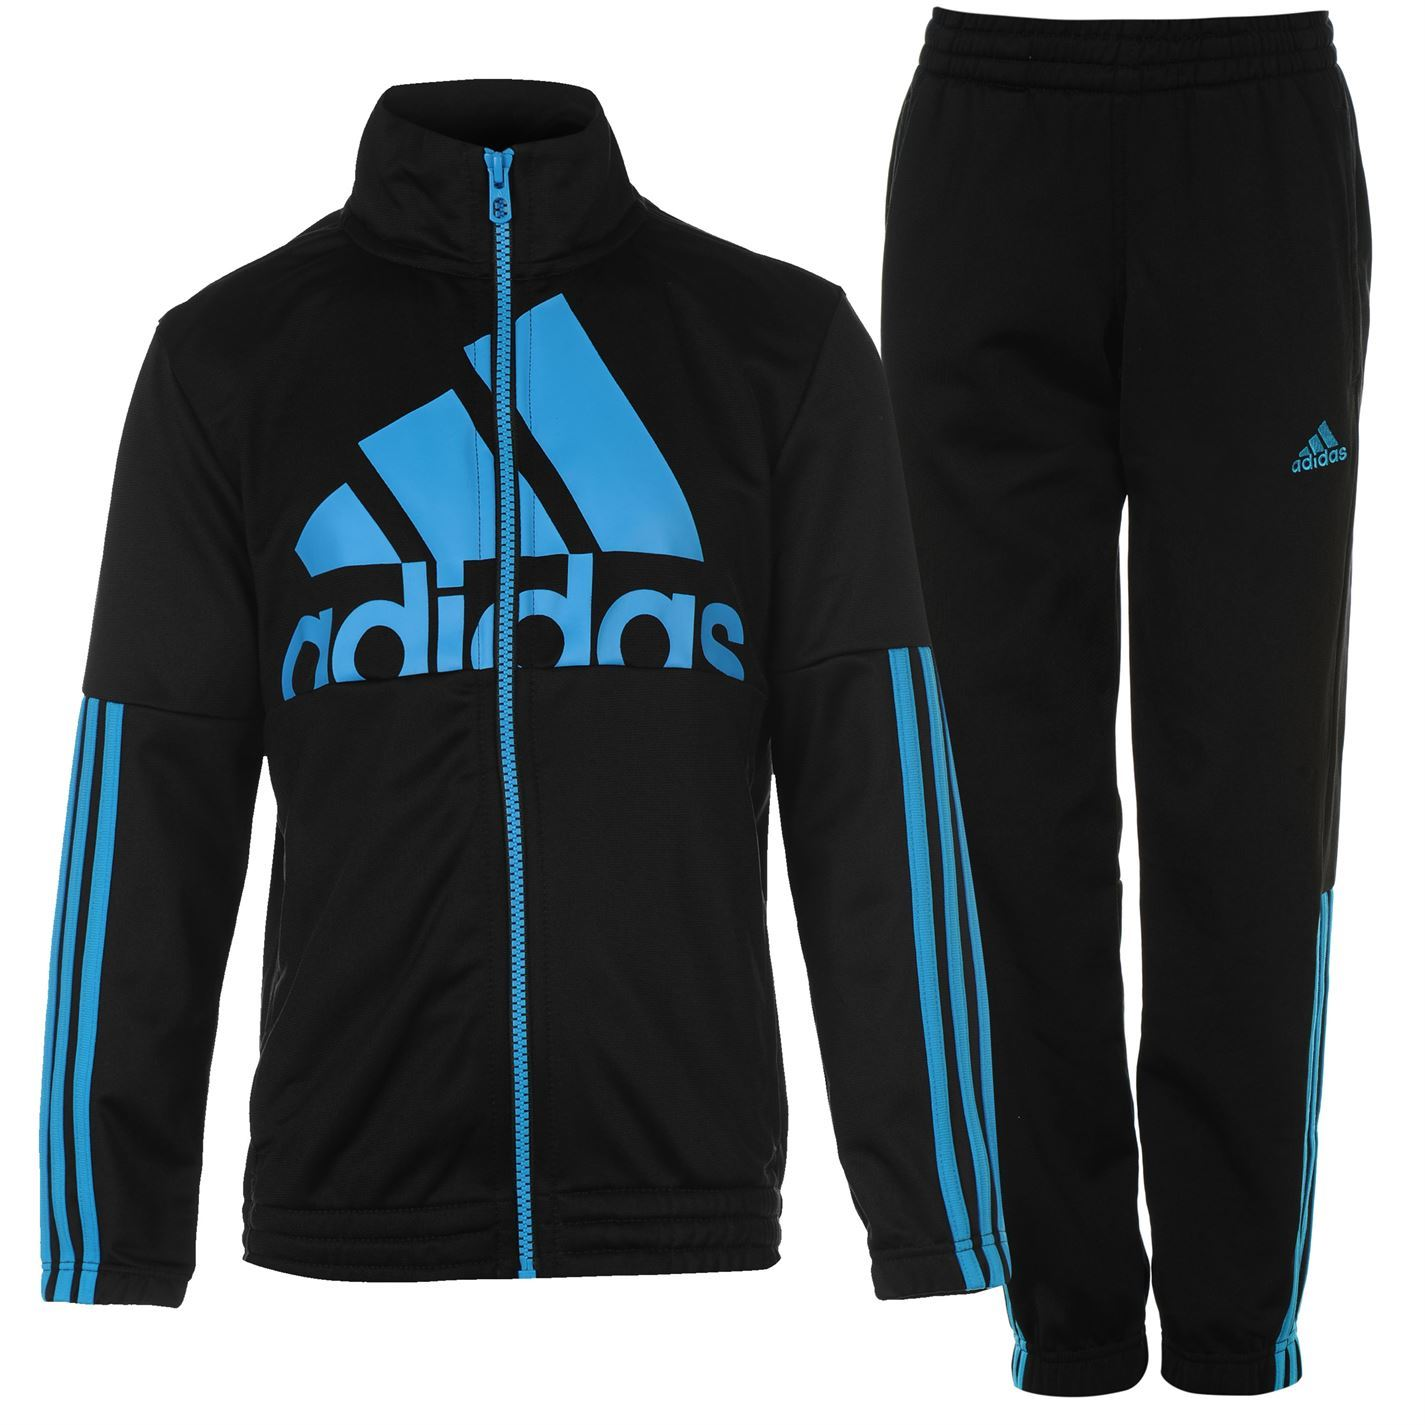 Youth Adidas Tracksuits